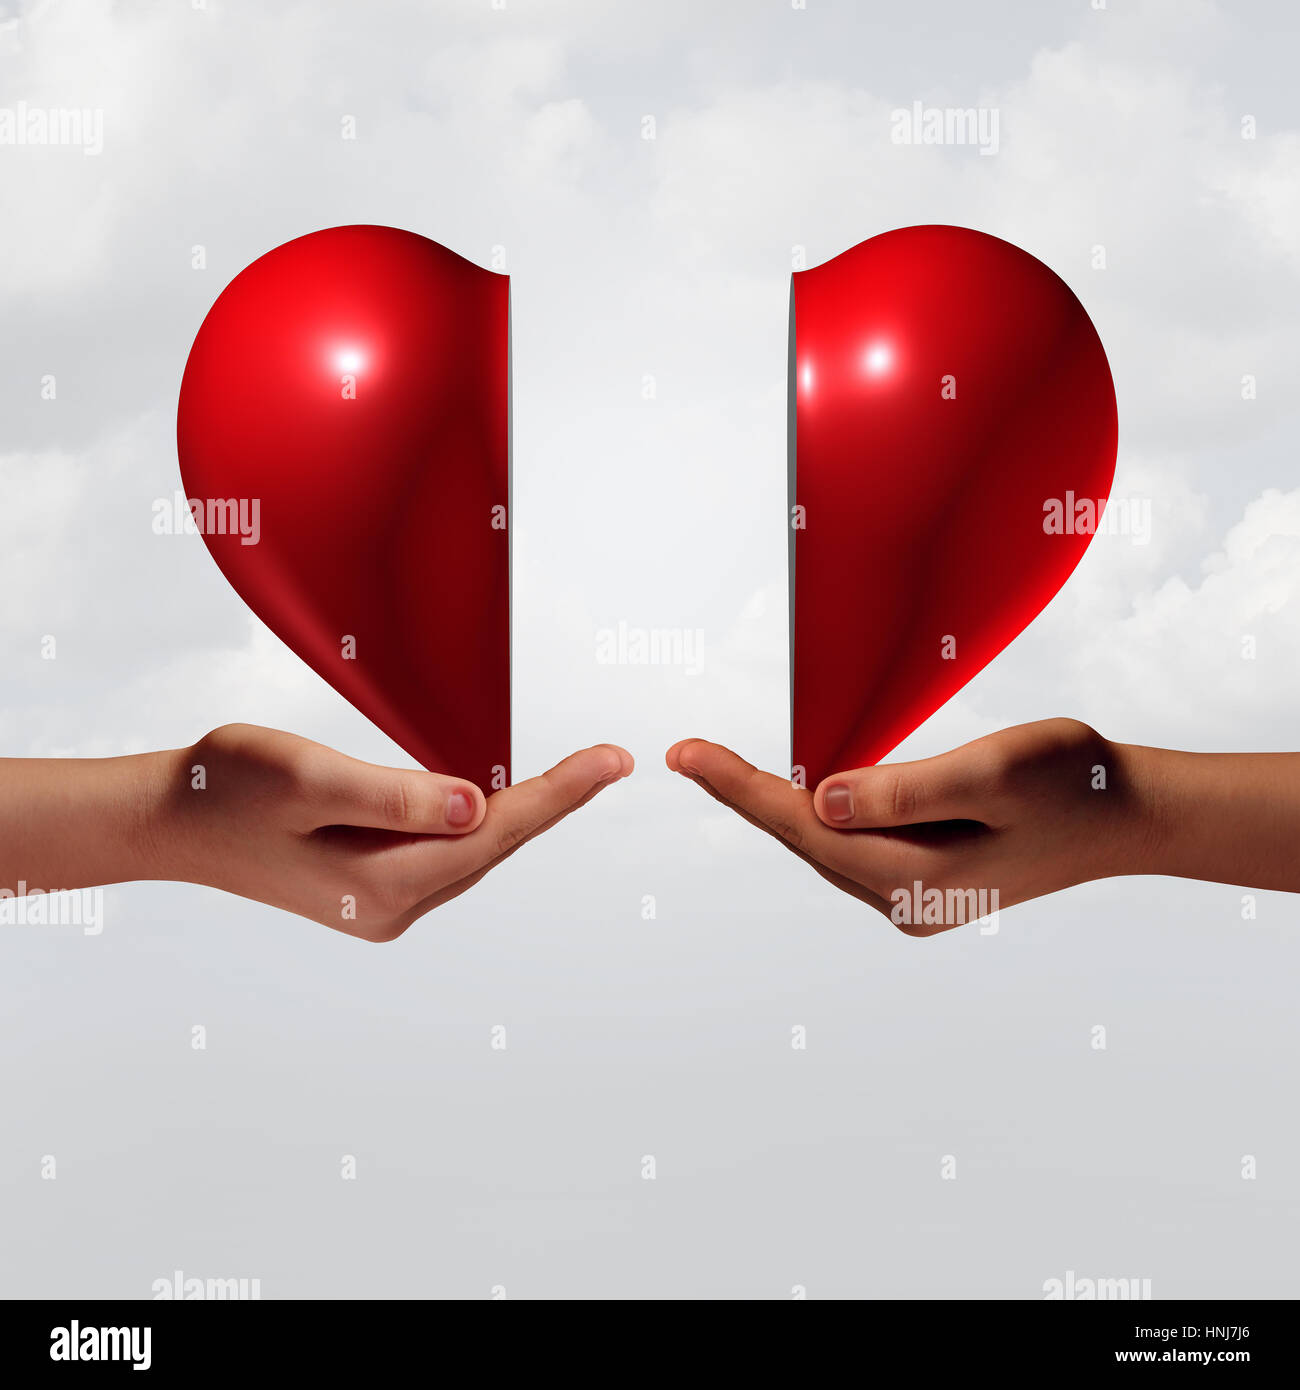 Love connection romance and relationship couple trouble concept as two human hands holding a valentine day heart. - Stock Image